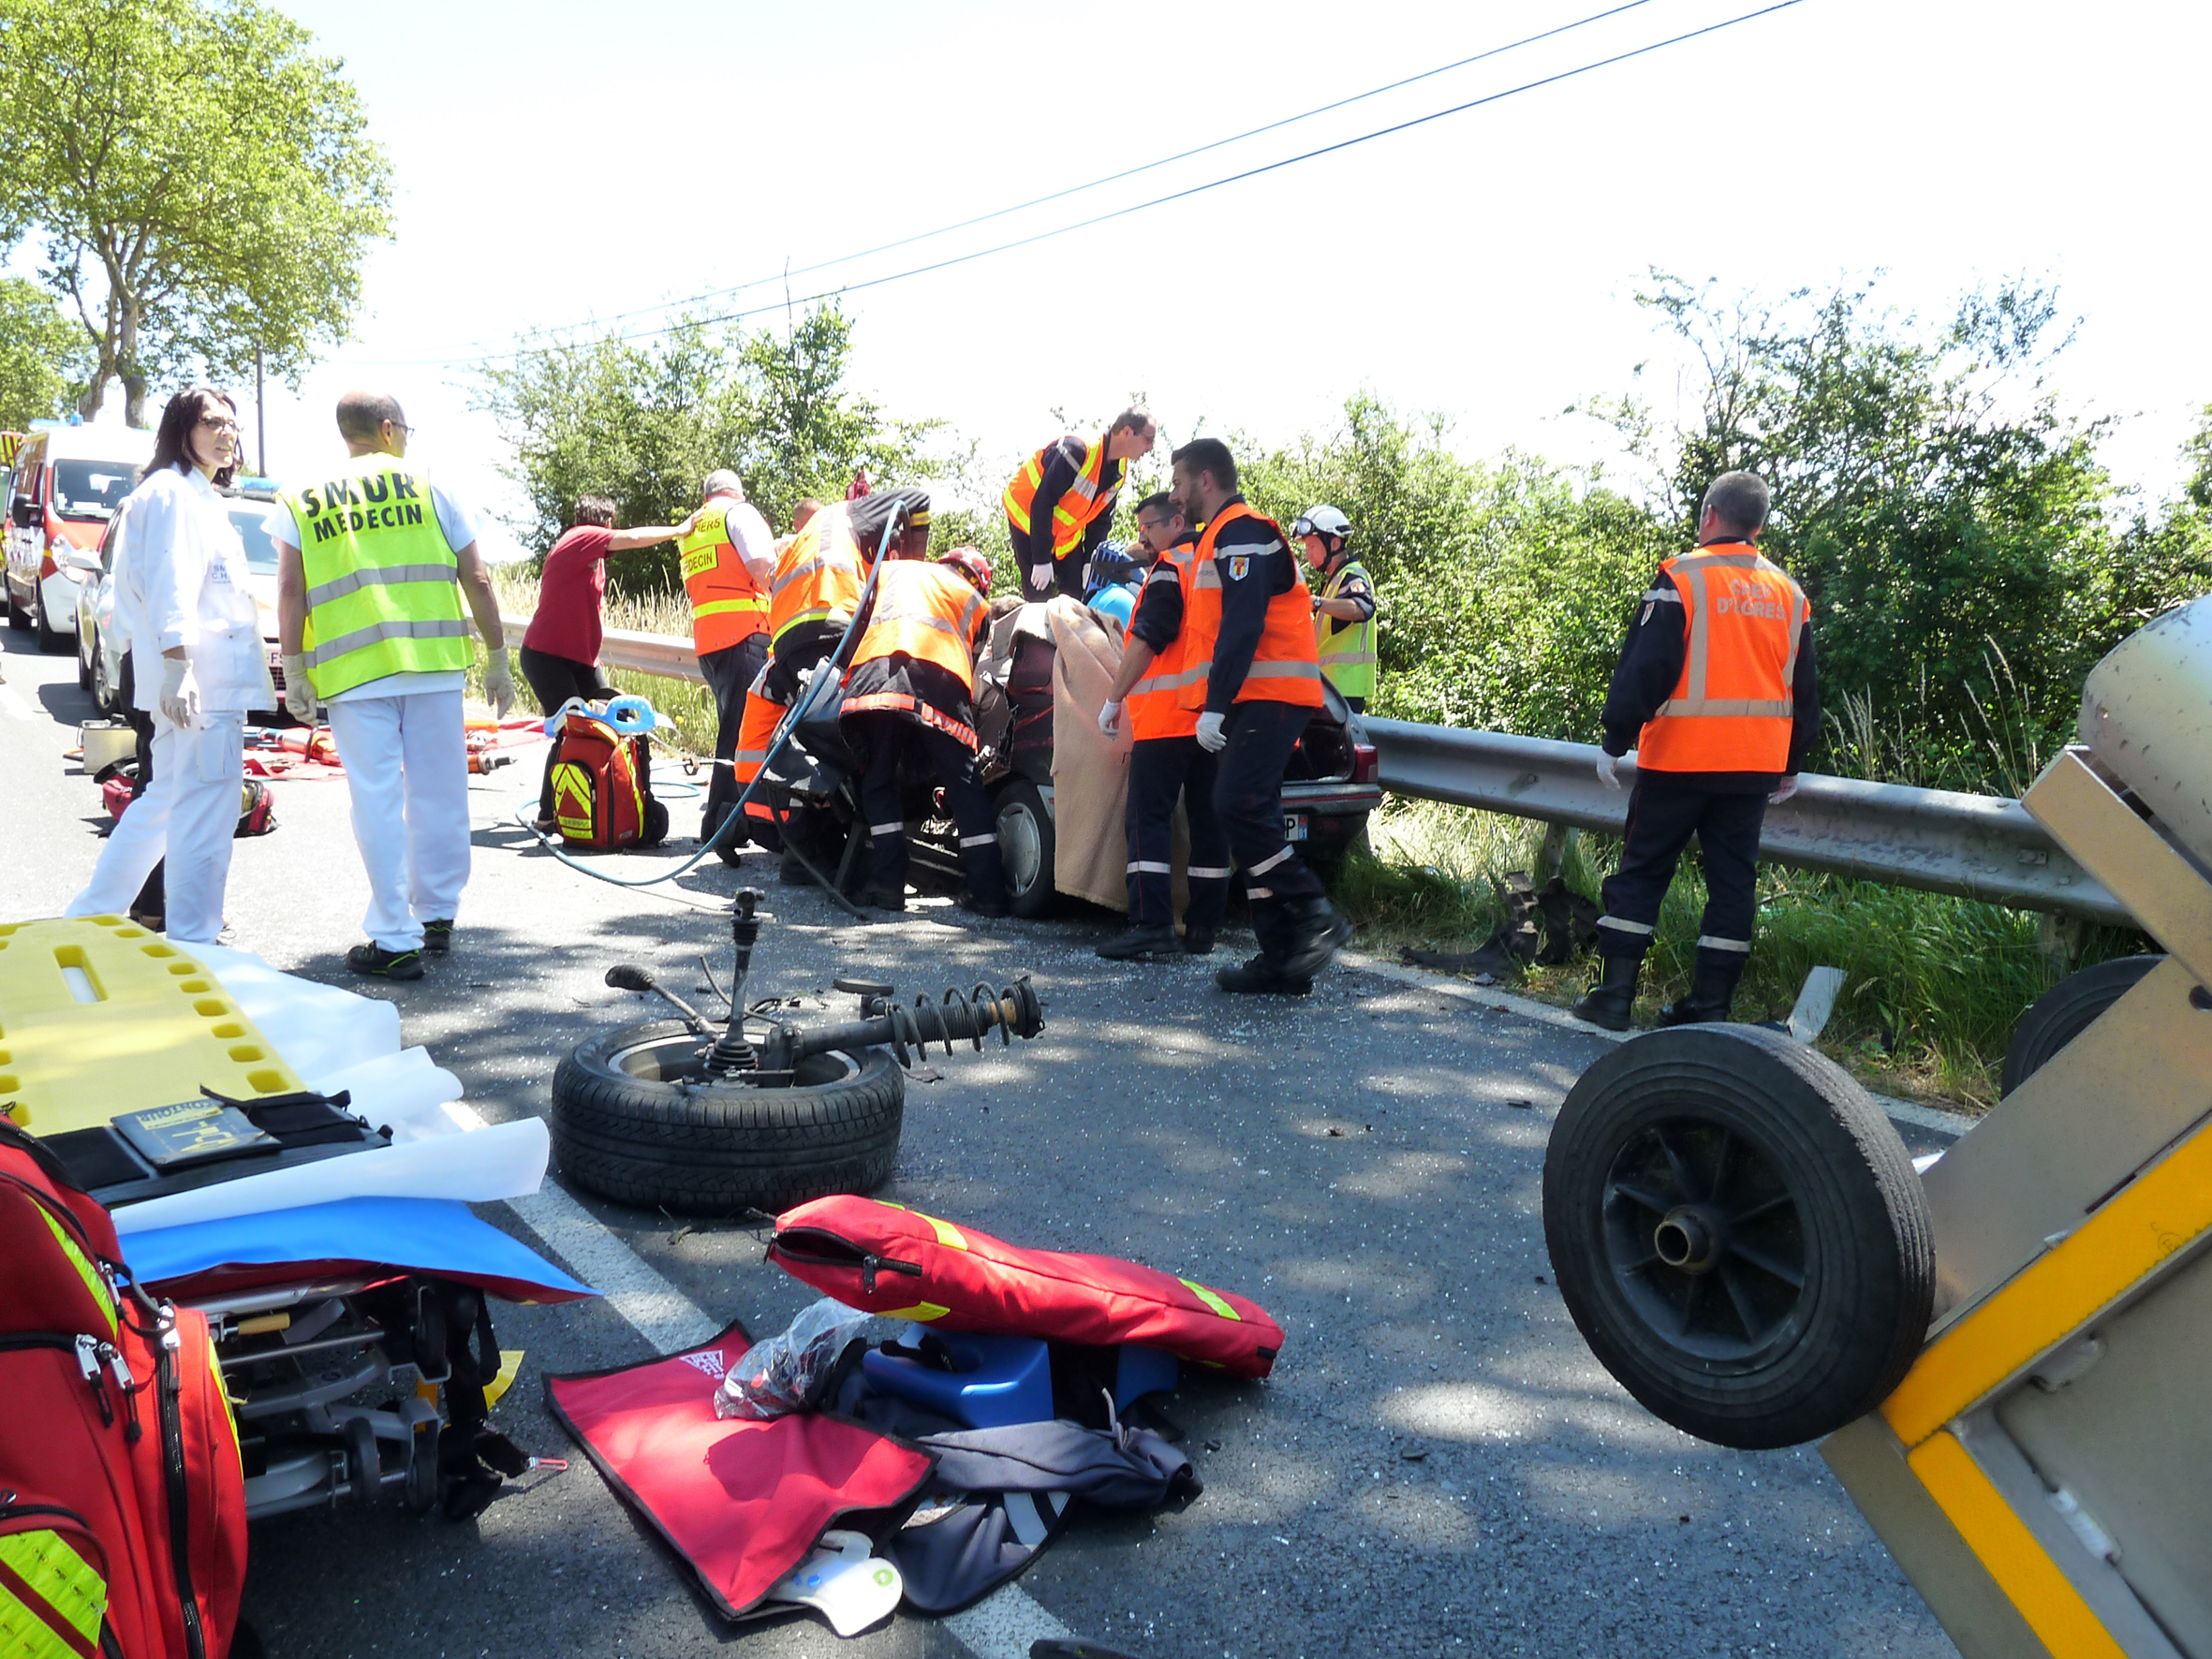 Accident de la circulation sur la commune de Castres